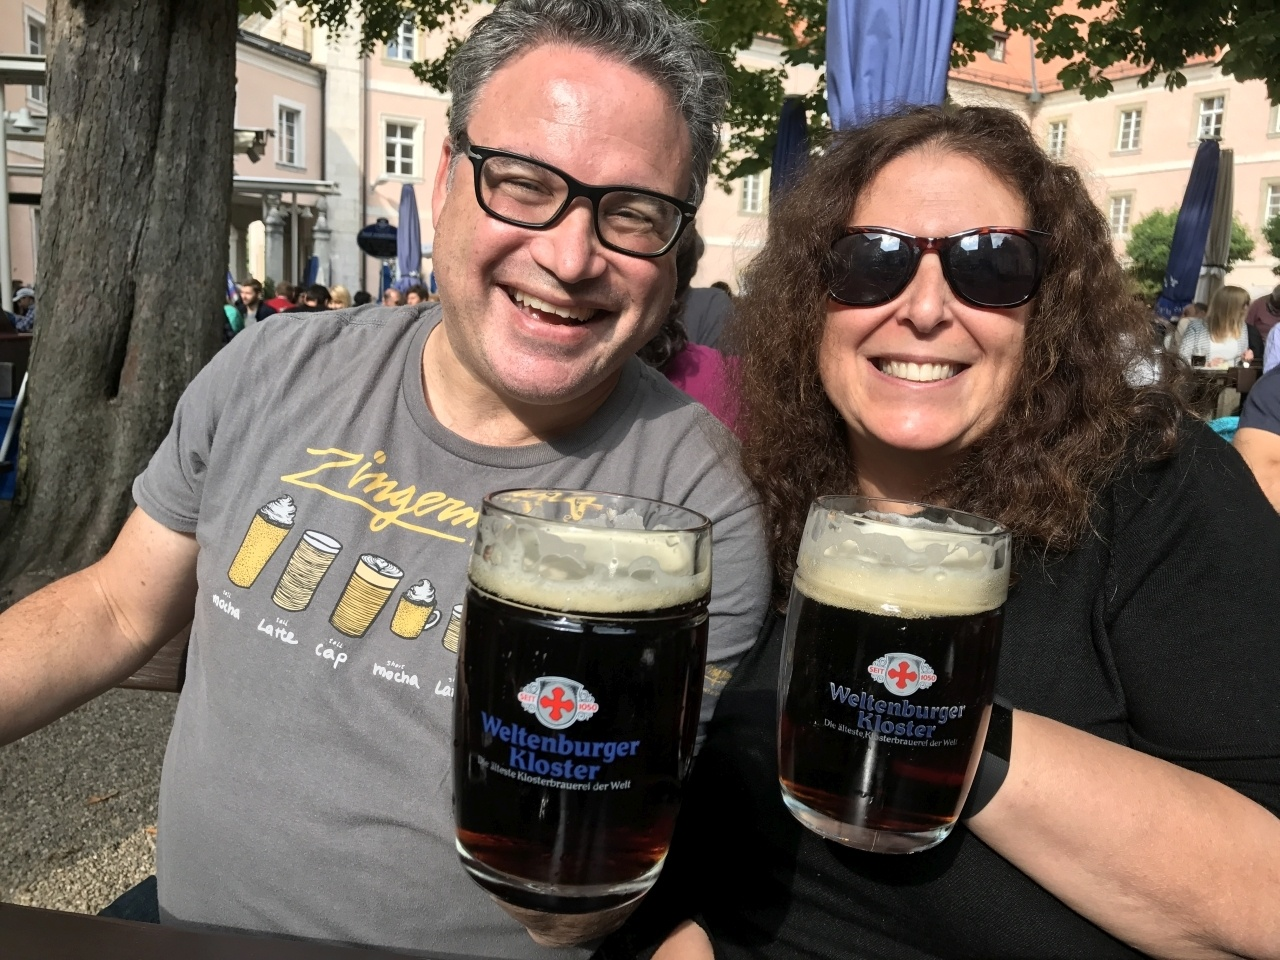 Prosit! Daryl and Mindi clink beer mugs